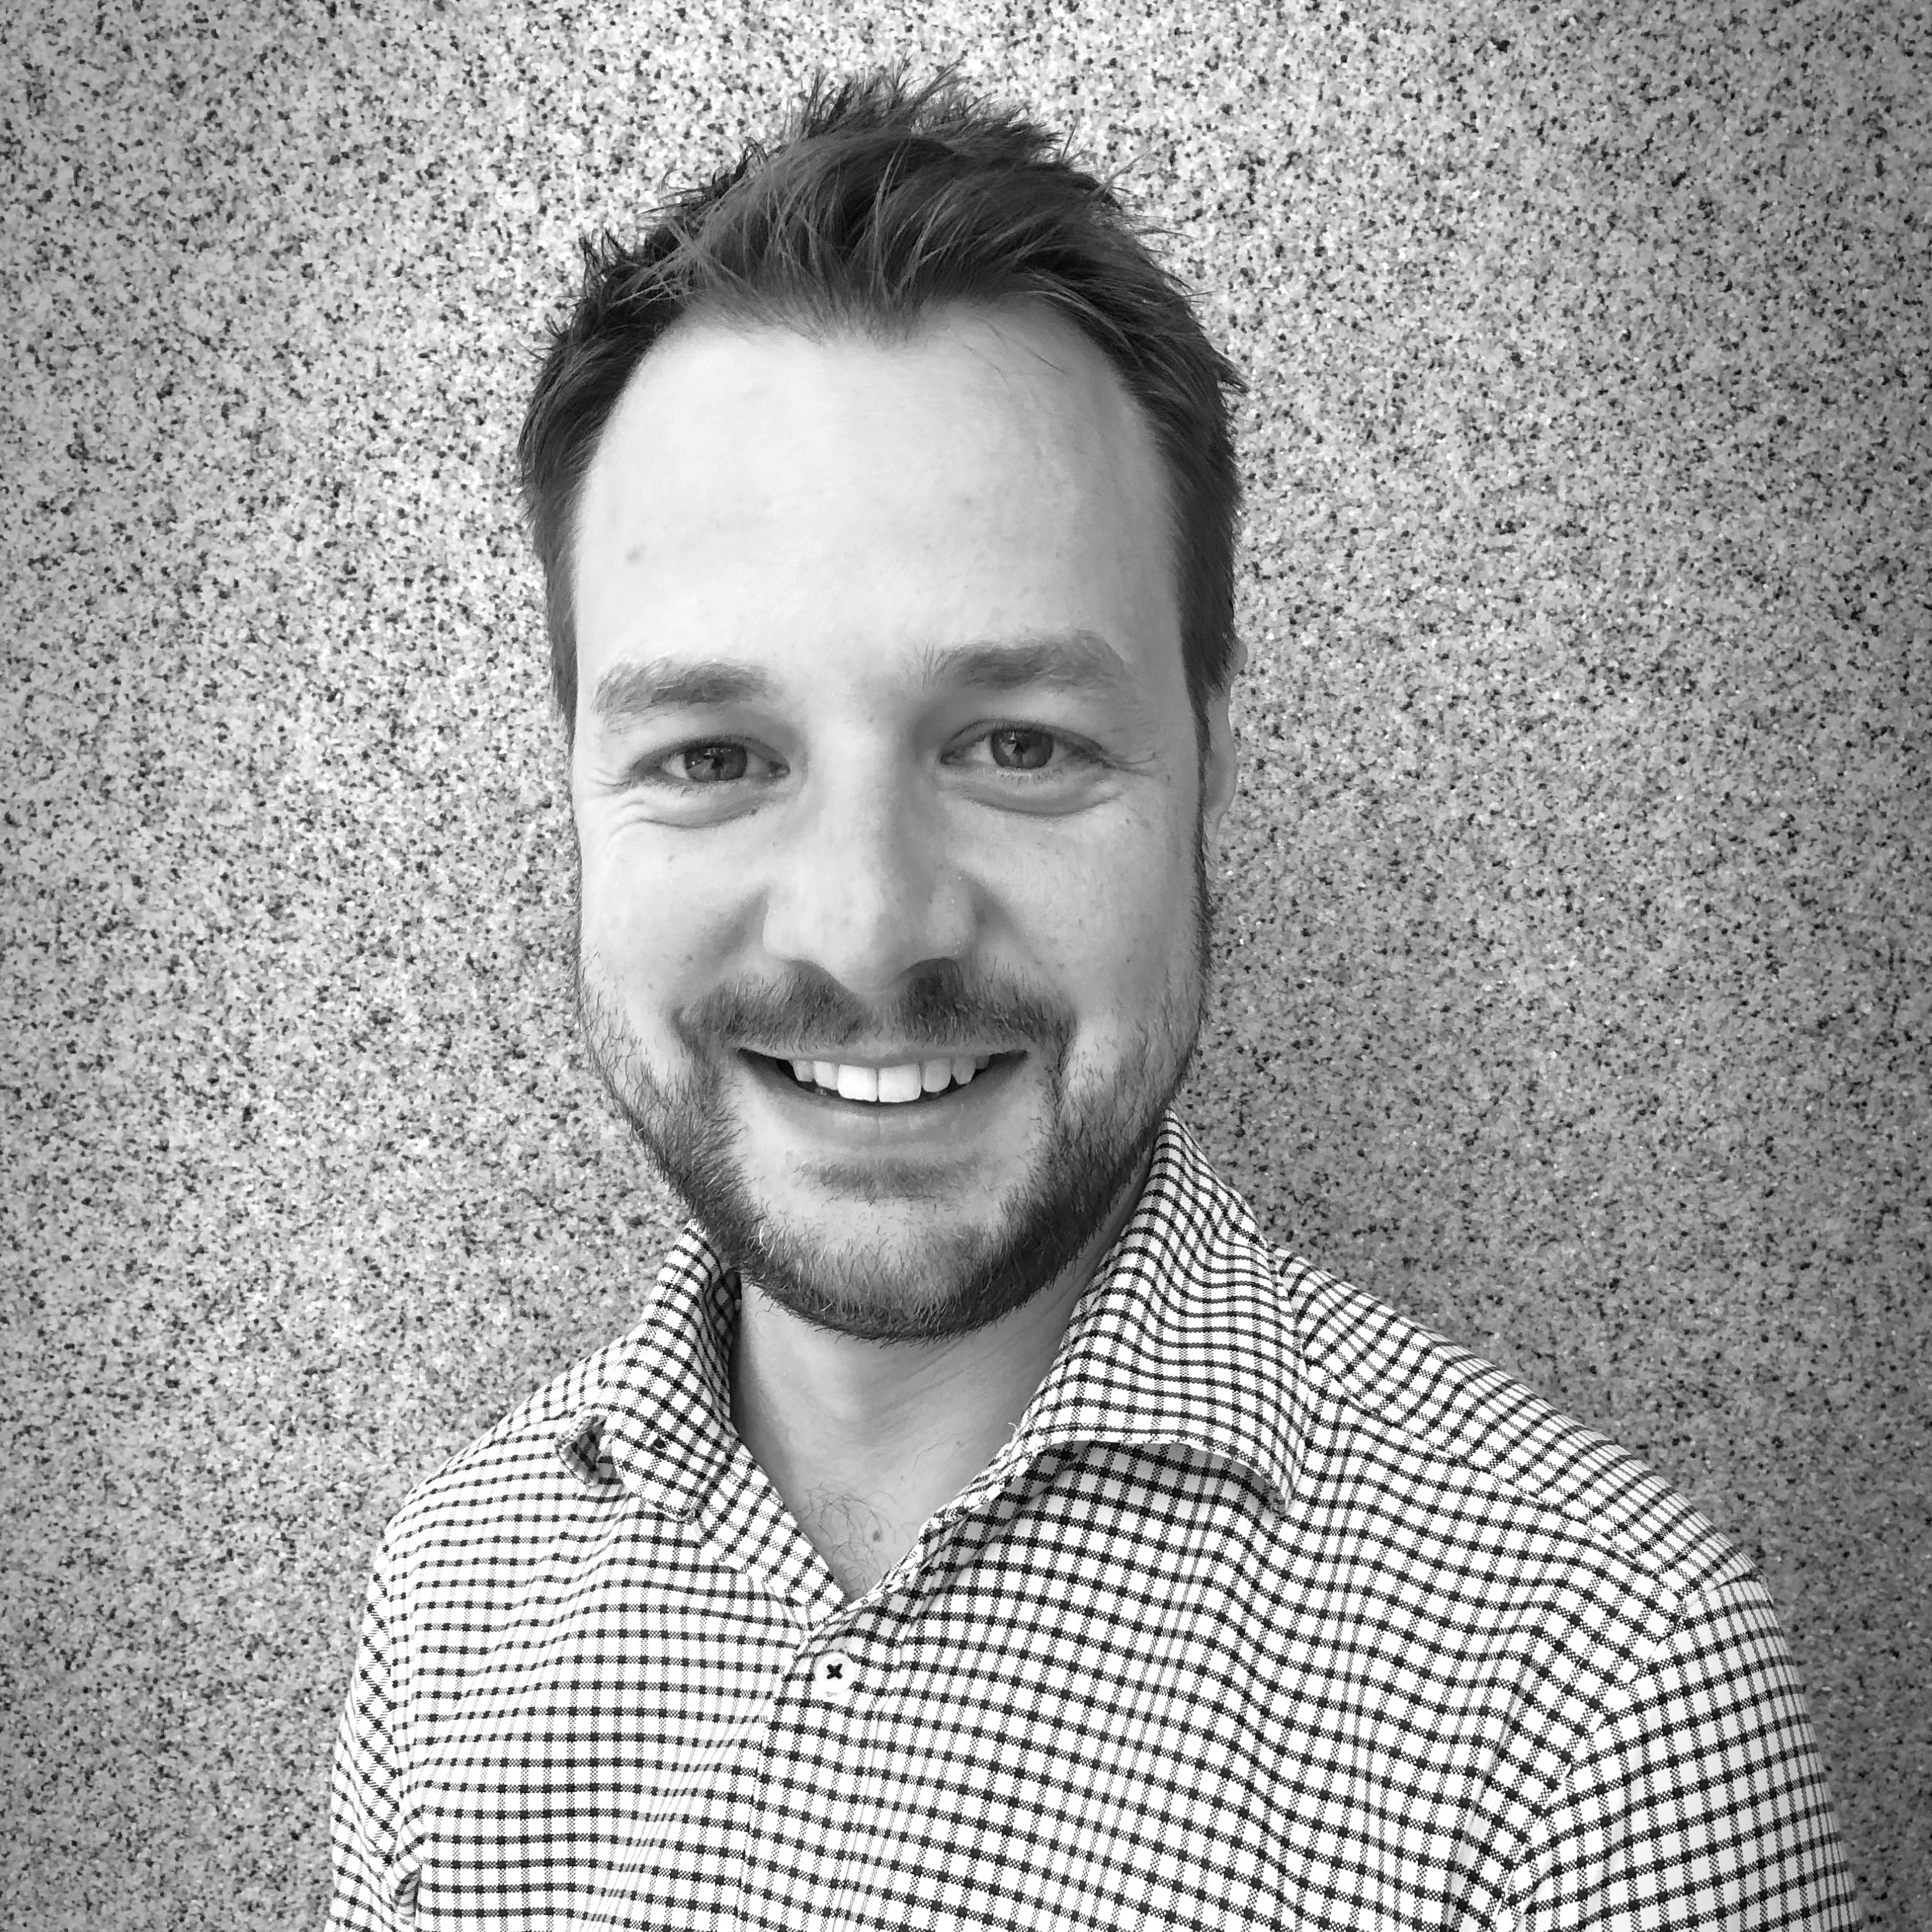 Eliot Reeves is an Associate Director at Performance Based Consulting. - As a registered C10 fire engineer, Eliot works with a wide range of clients to make their buildings safer and more efficient.